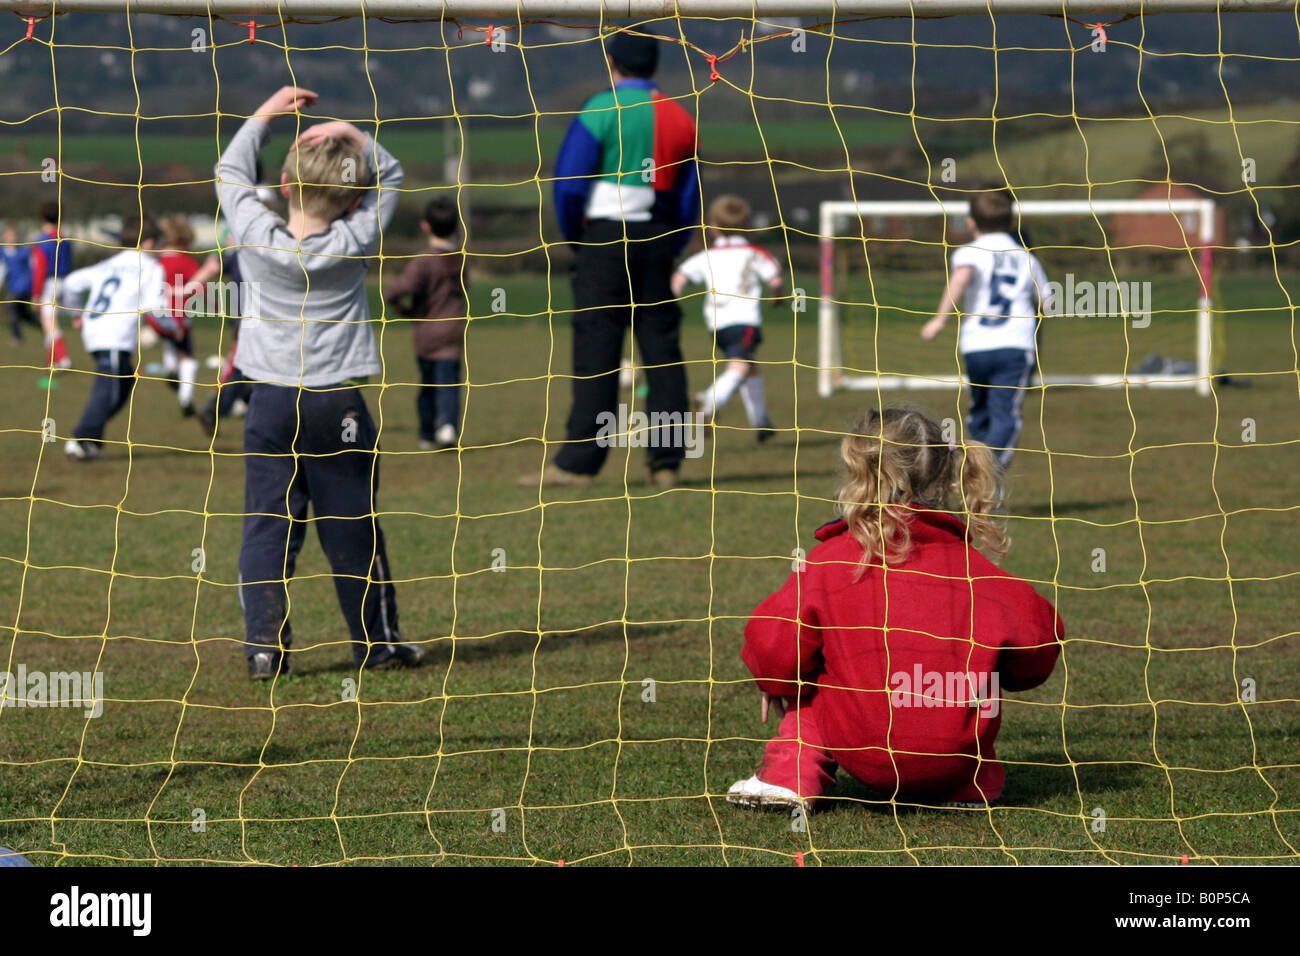 little girl playing in goal during a football match between children - Stock Image